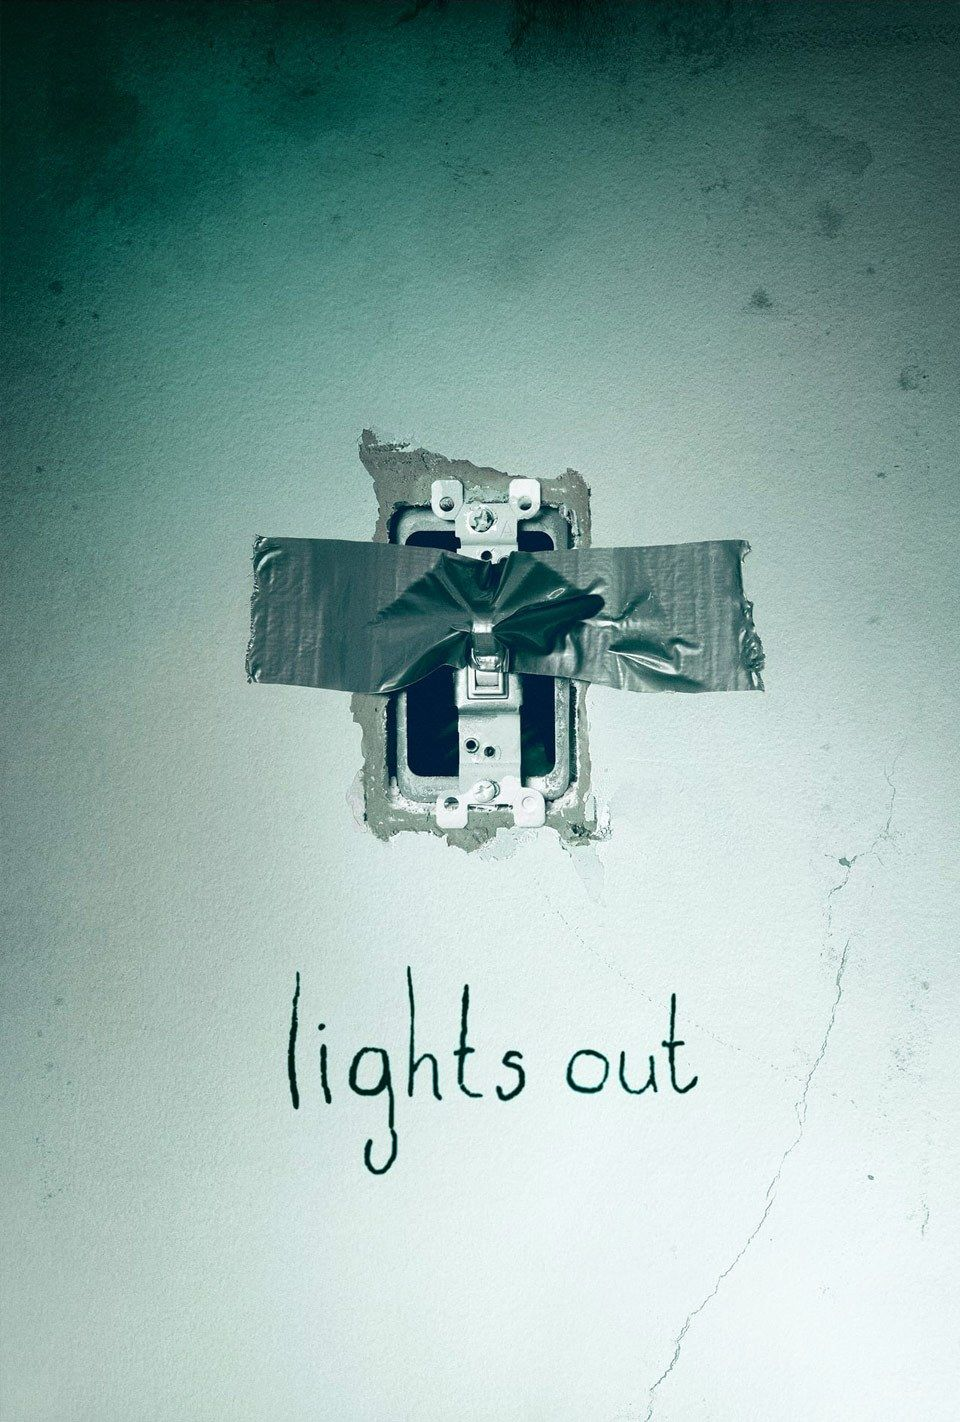 lights out 2016 full movie free download